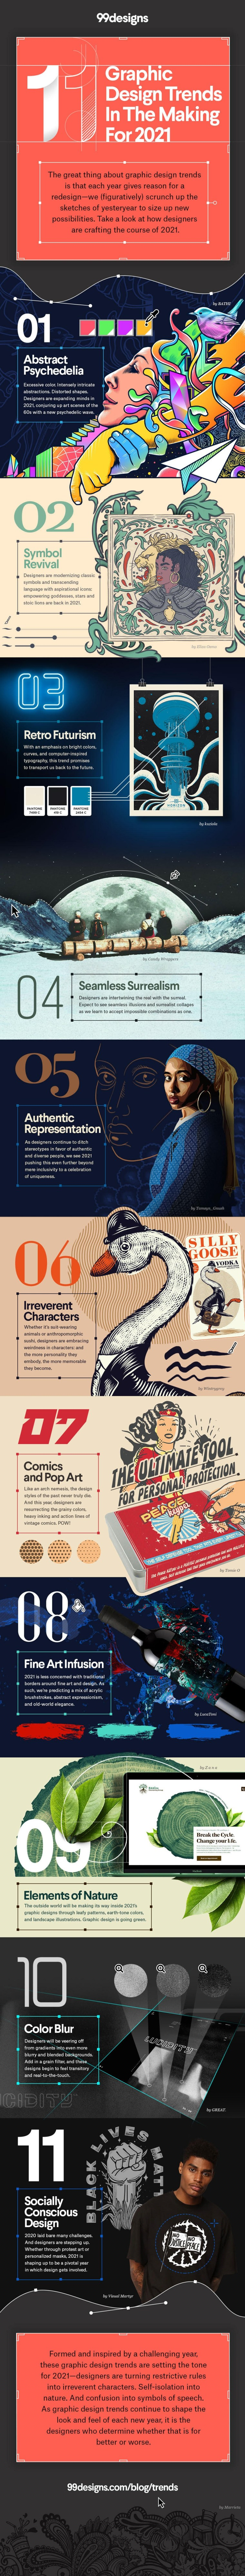 11 visual trends infographic